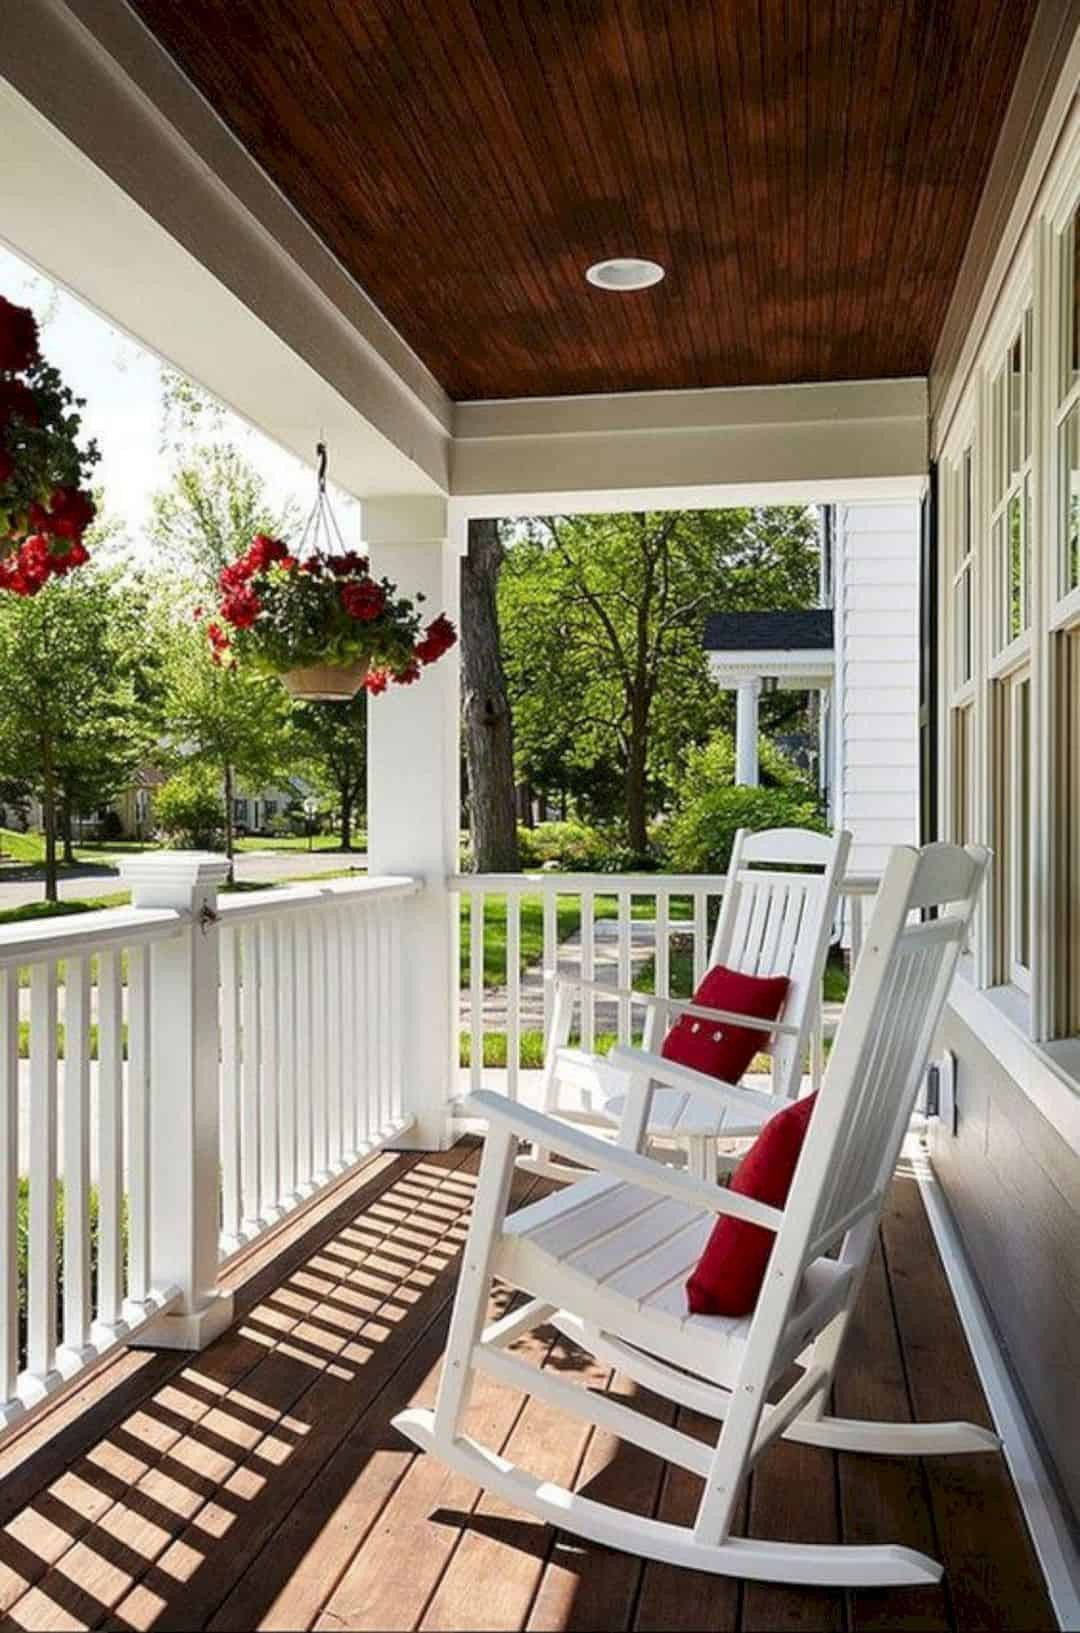 Decor Ideas for Front Porch Awesome 17 Impressive Front Porch Decorating Ideas